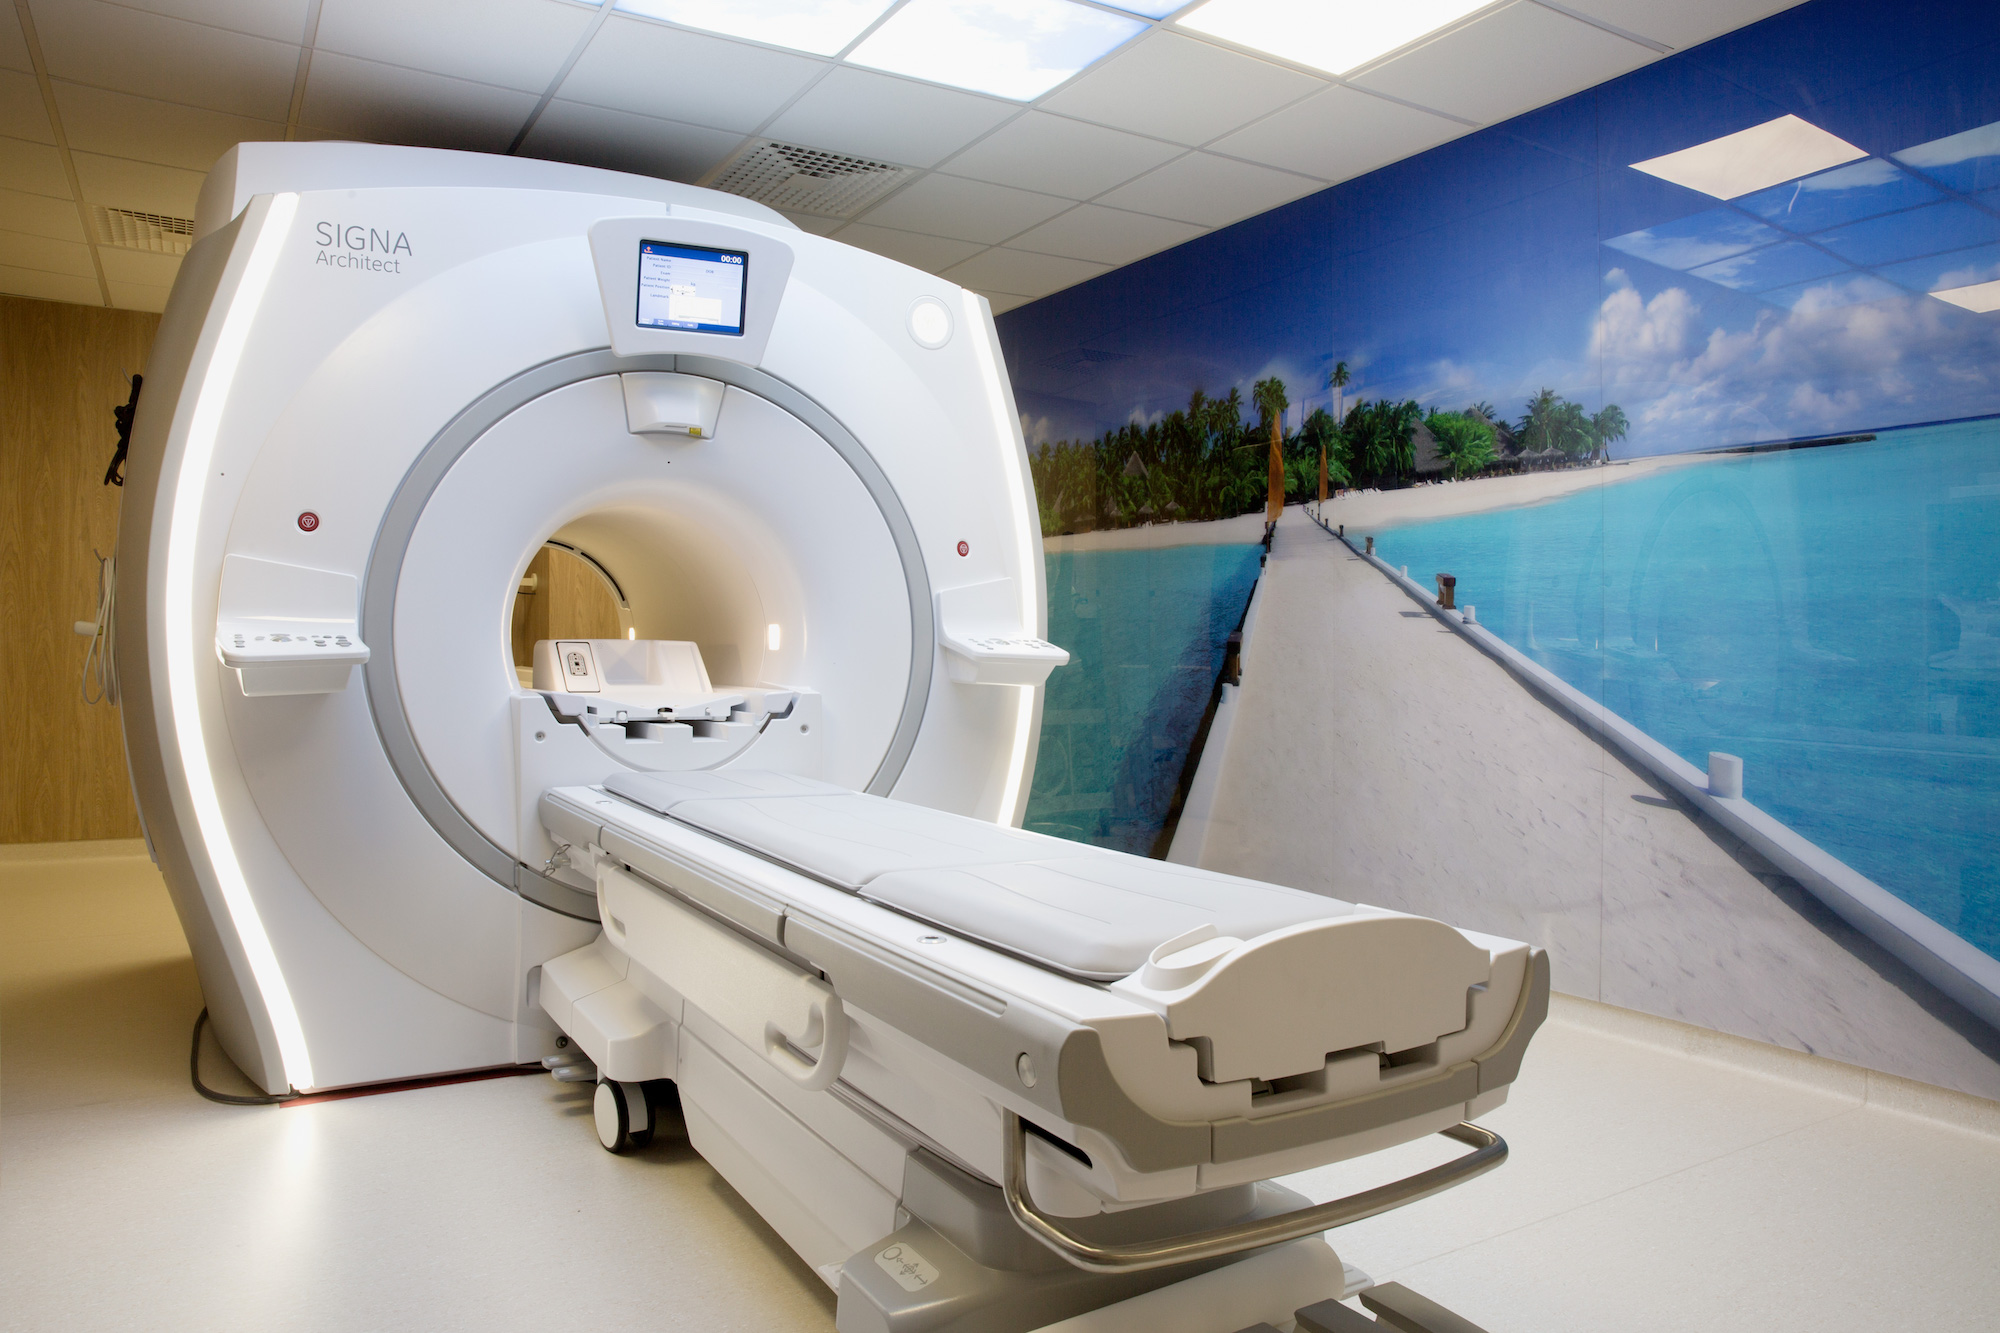 Ge Mri Profile Head Coil Craigslist: Signa Architect GE